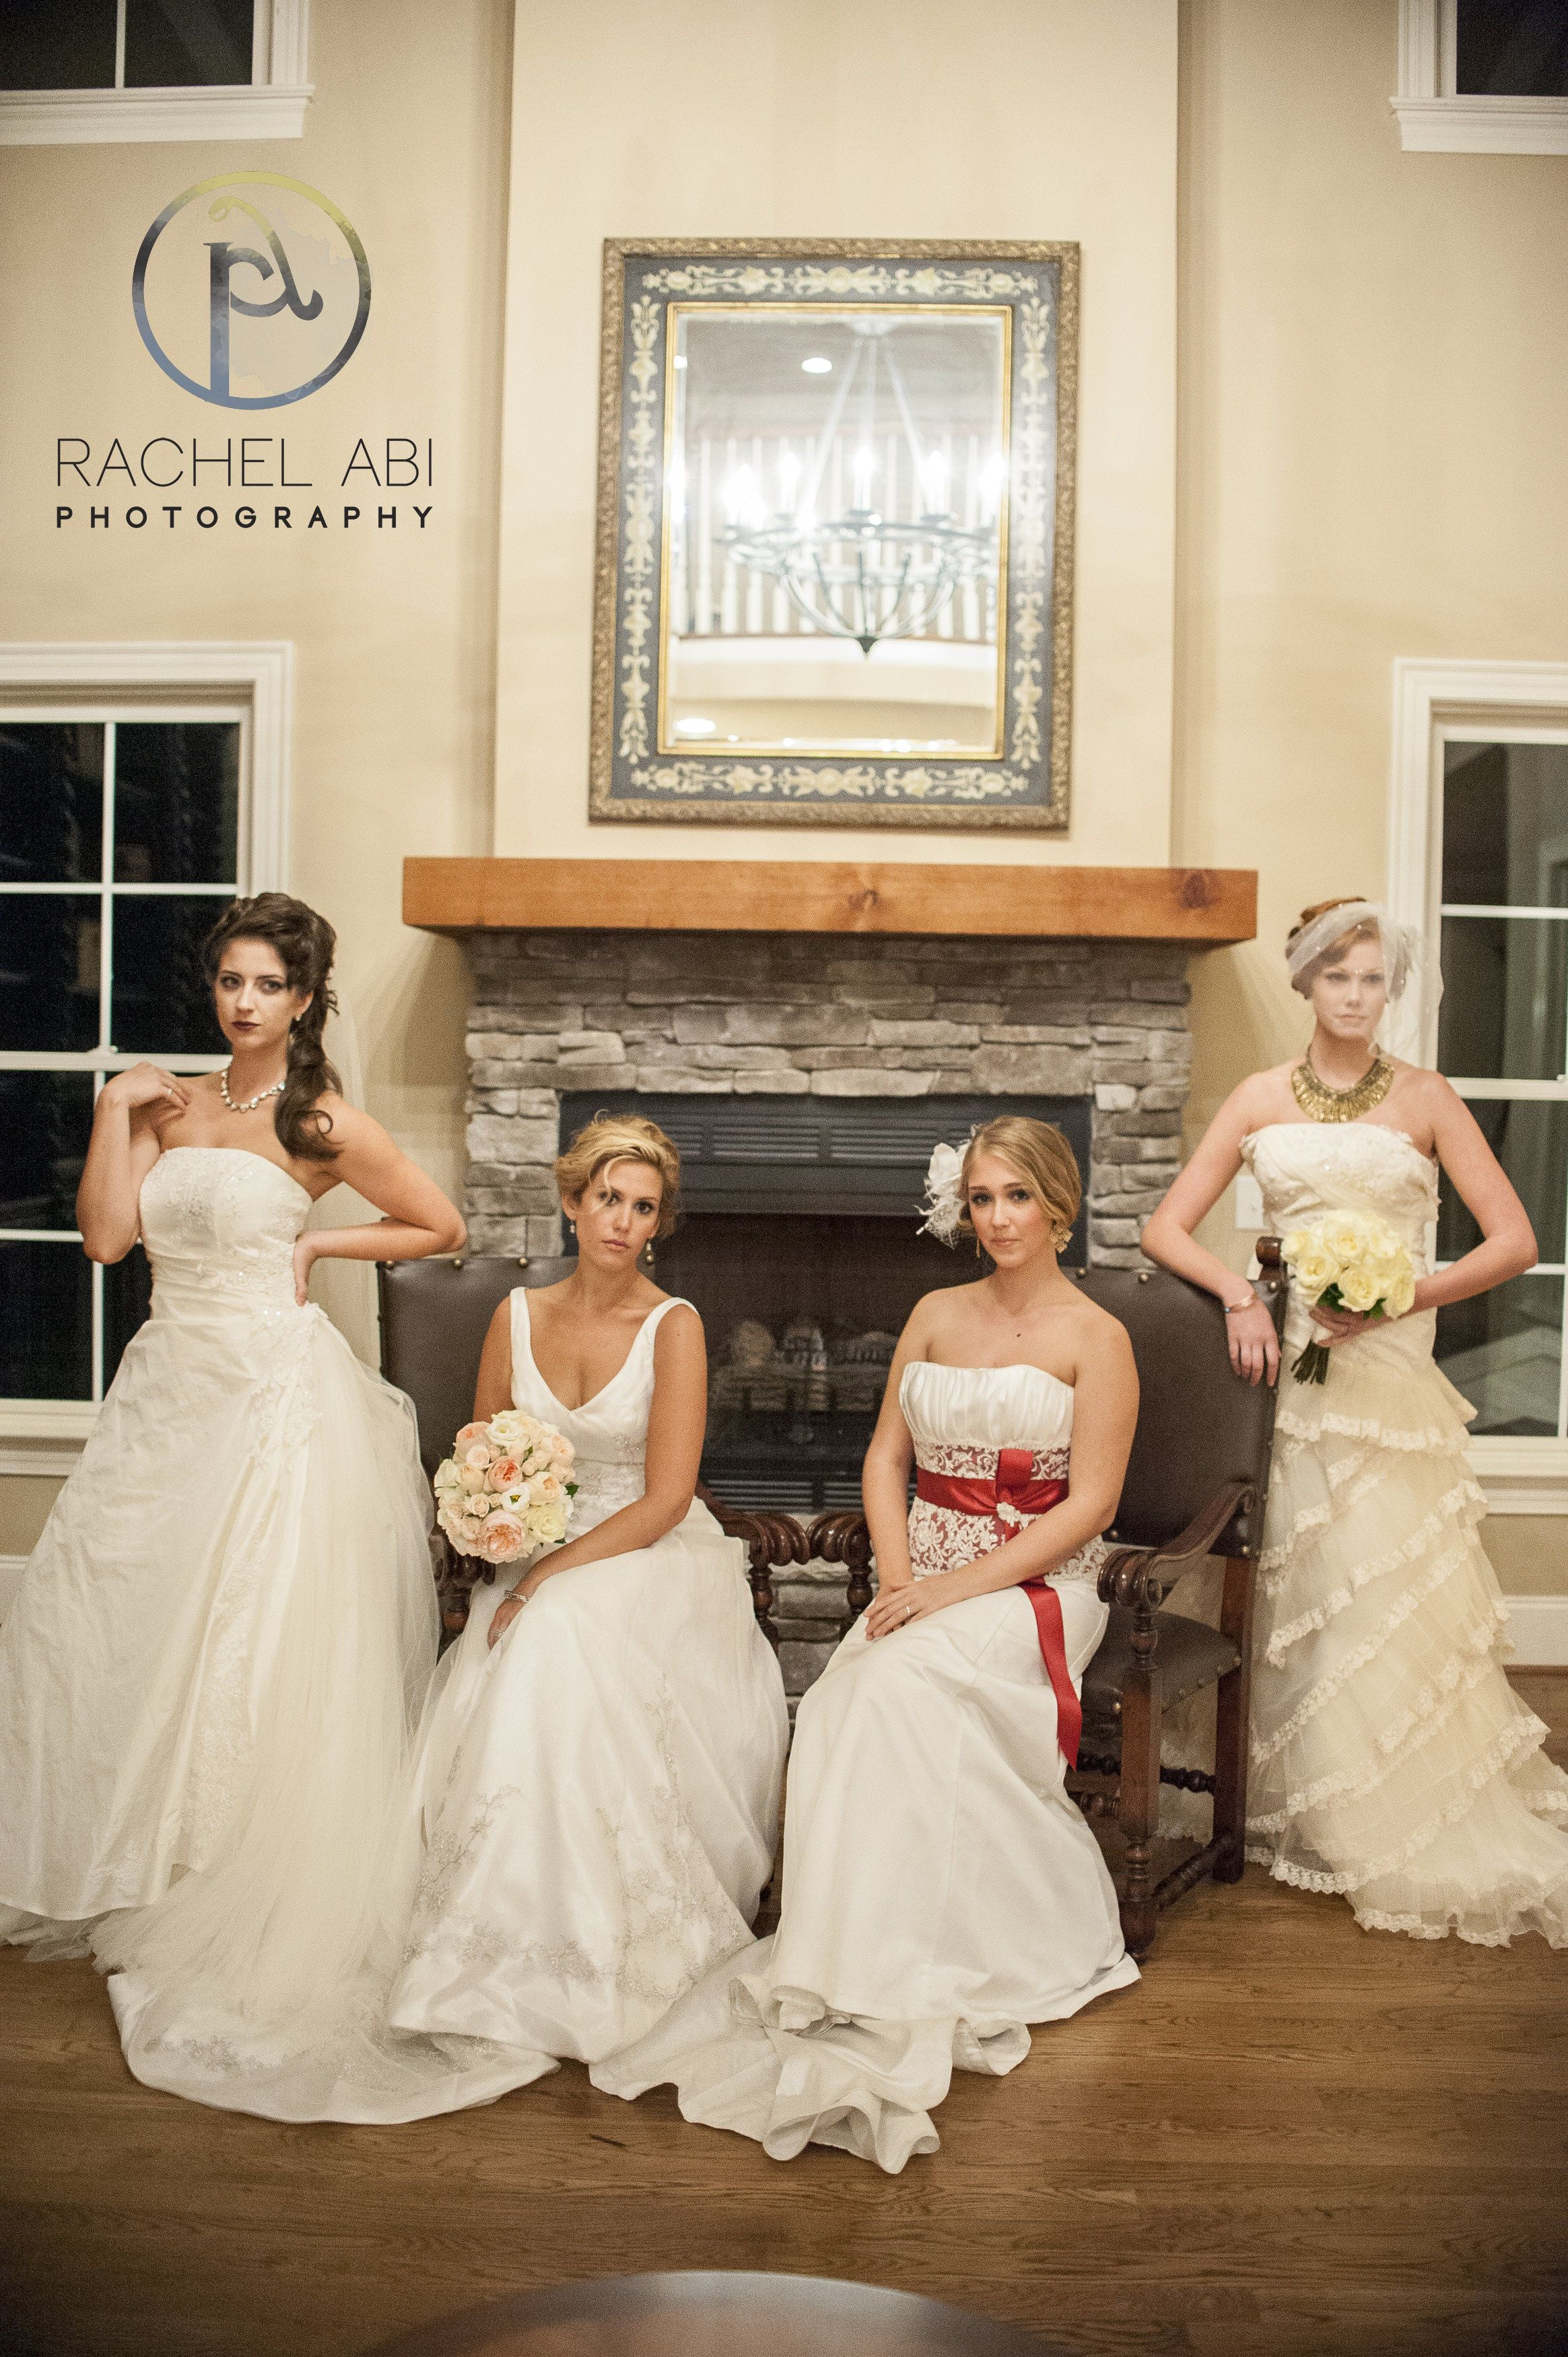 All of the lovely brides! Gown from Songbirds Bridal, Formal & Consignments. Photo by Rachel Abi. Venue is the Oaks at Salem. #bride #bridal #gown #weddinggown #bridalgown #ncbride #yestothedress #weddingphotography #triadbride